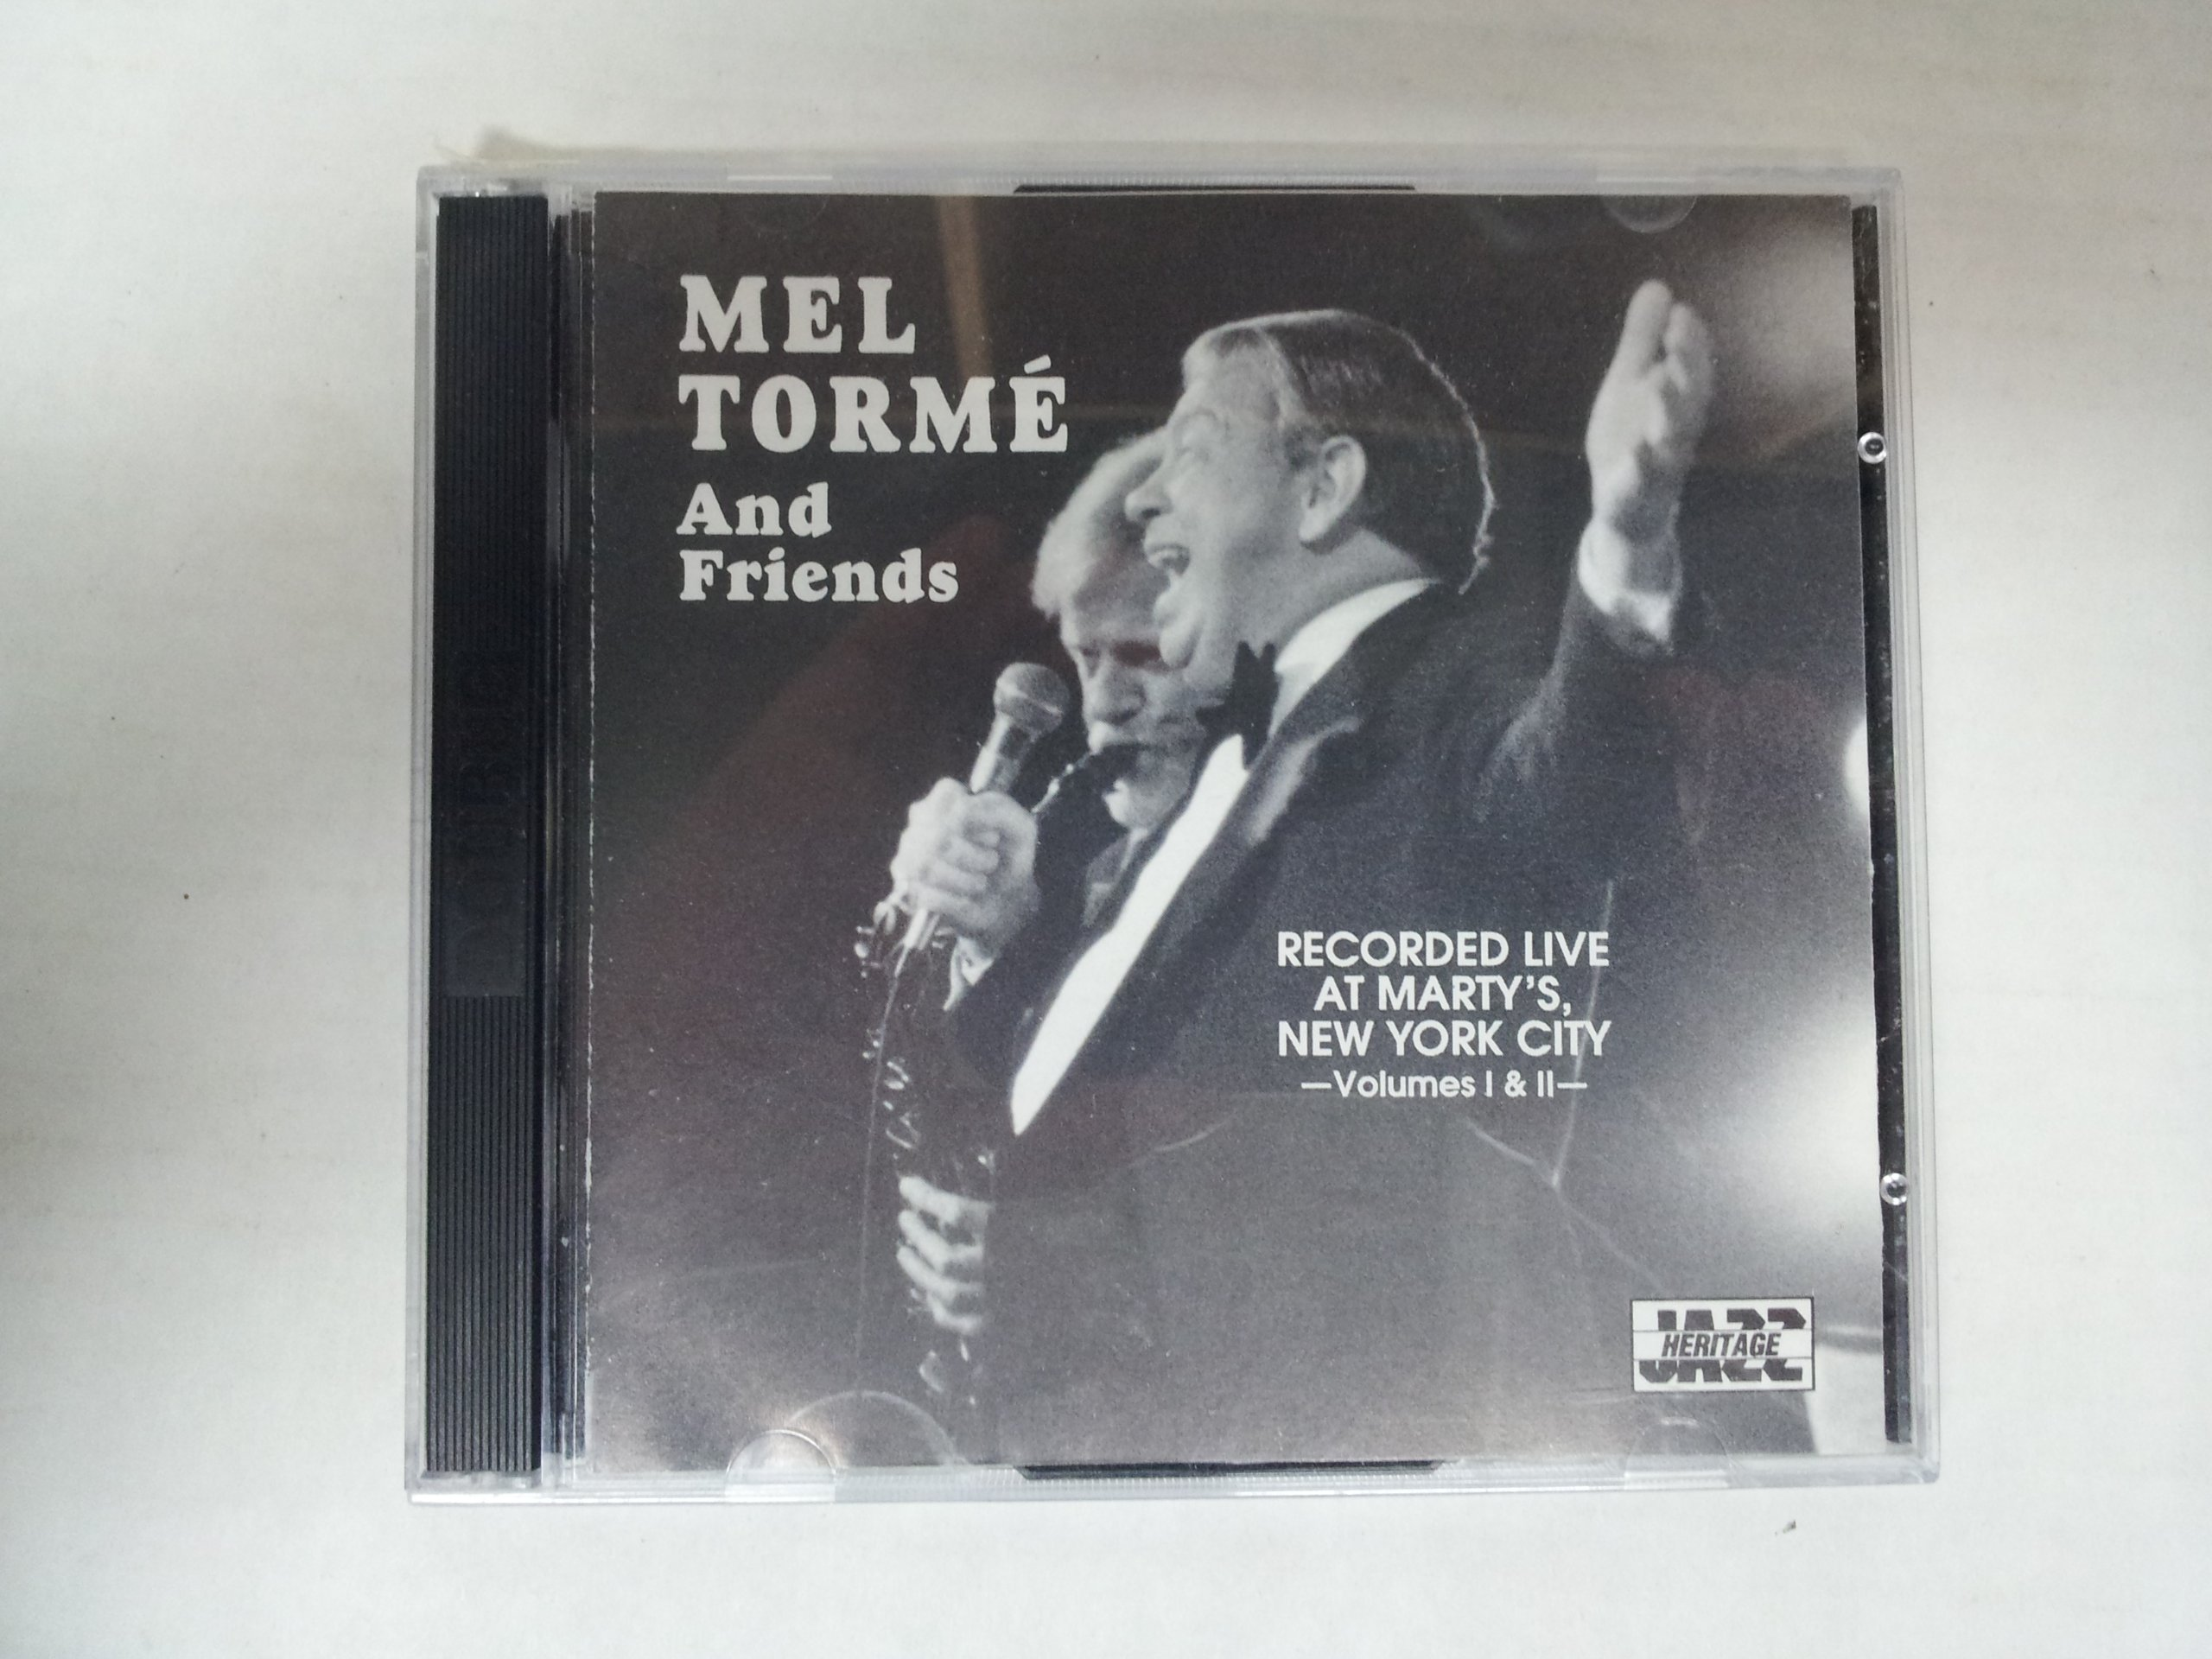 Mel Torme & Friends: Recorded Live at Marty's, New York City, Volumes I & II